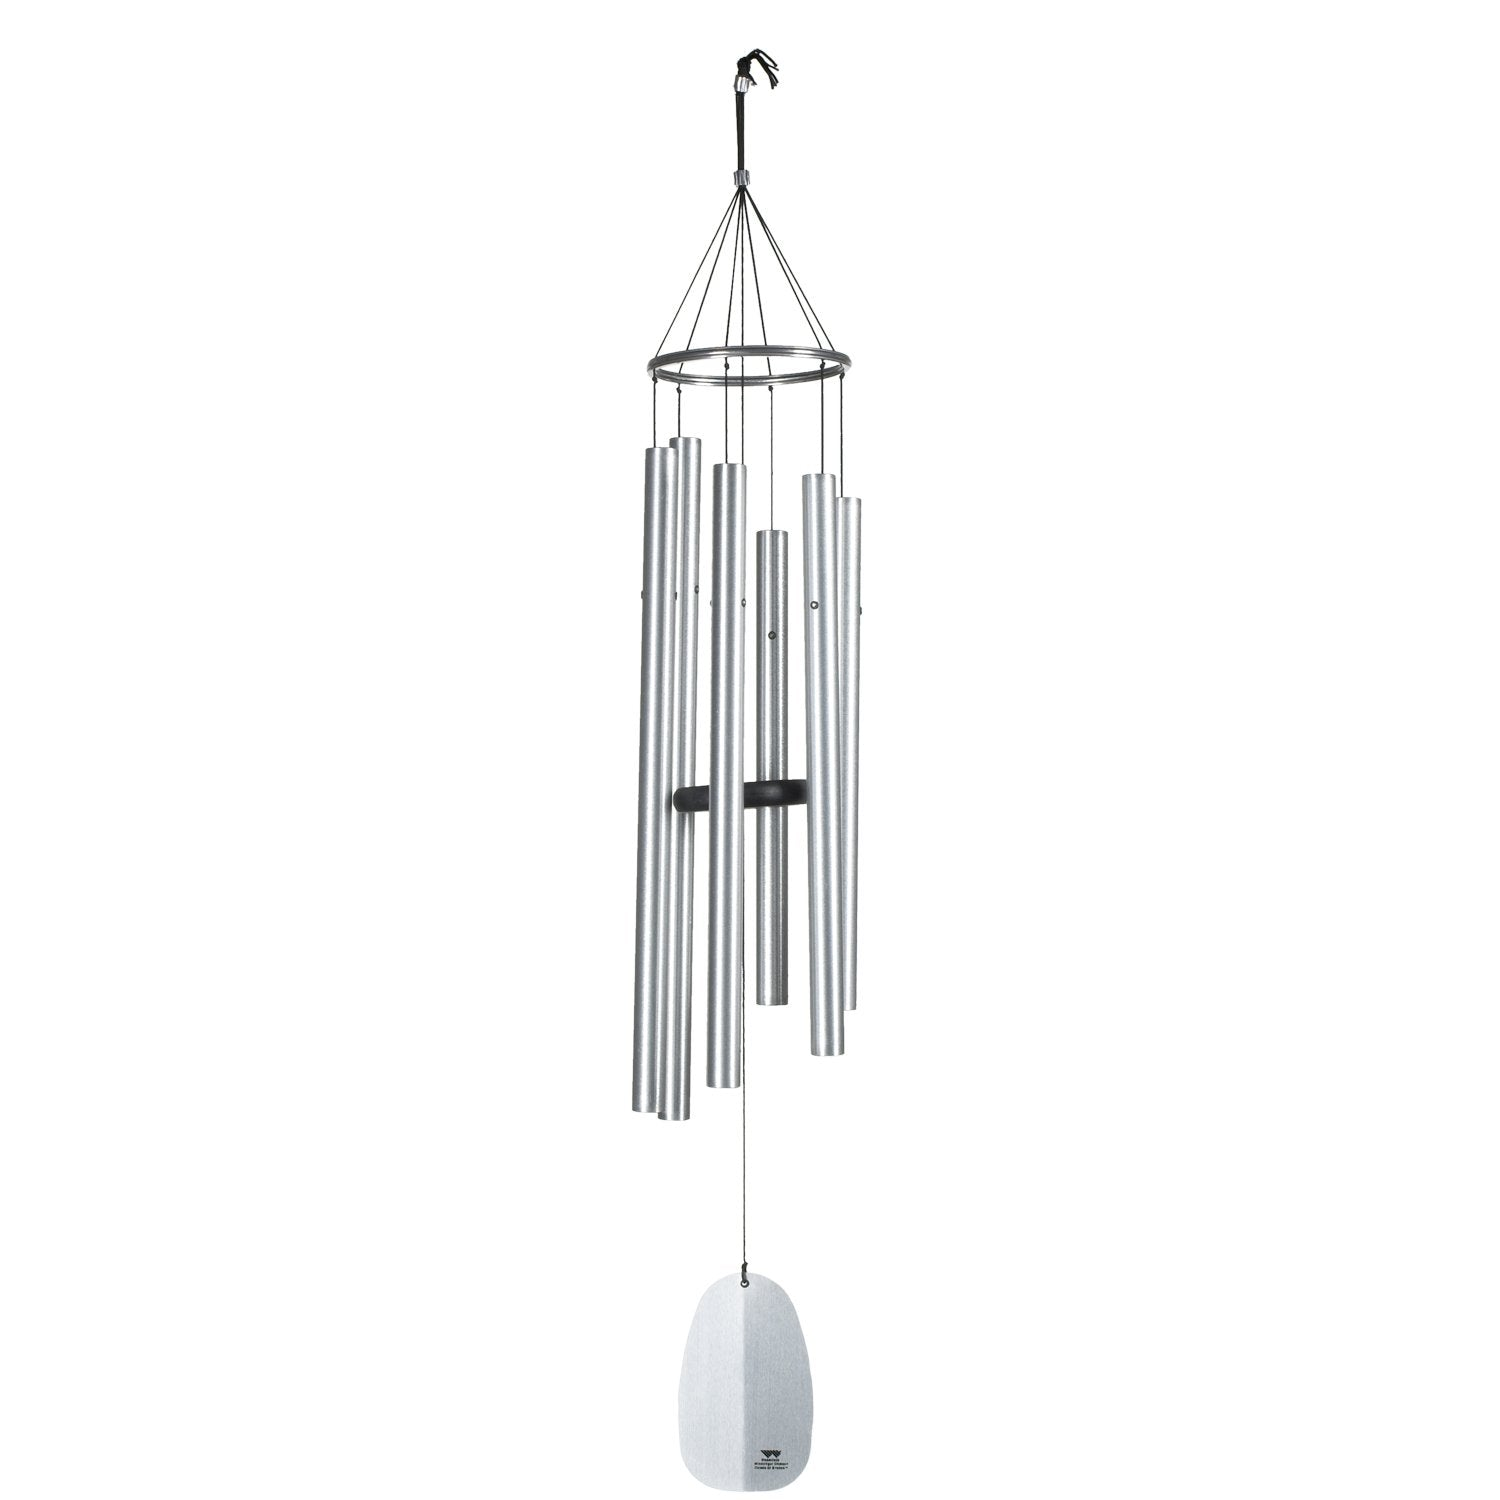 Windsinger Chimes of Athena - Silver full product image